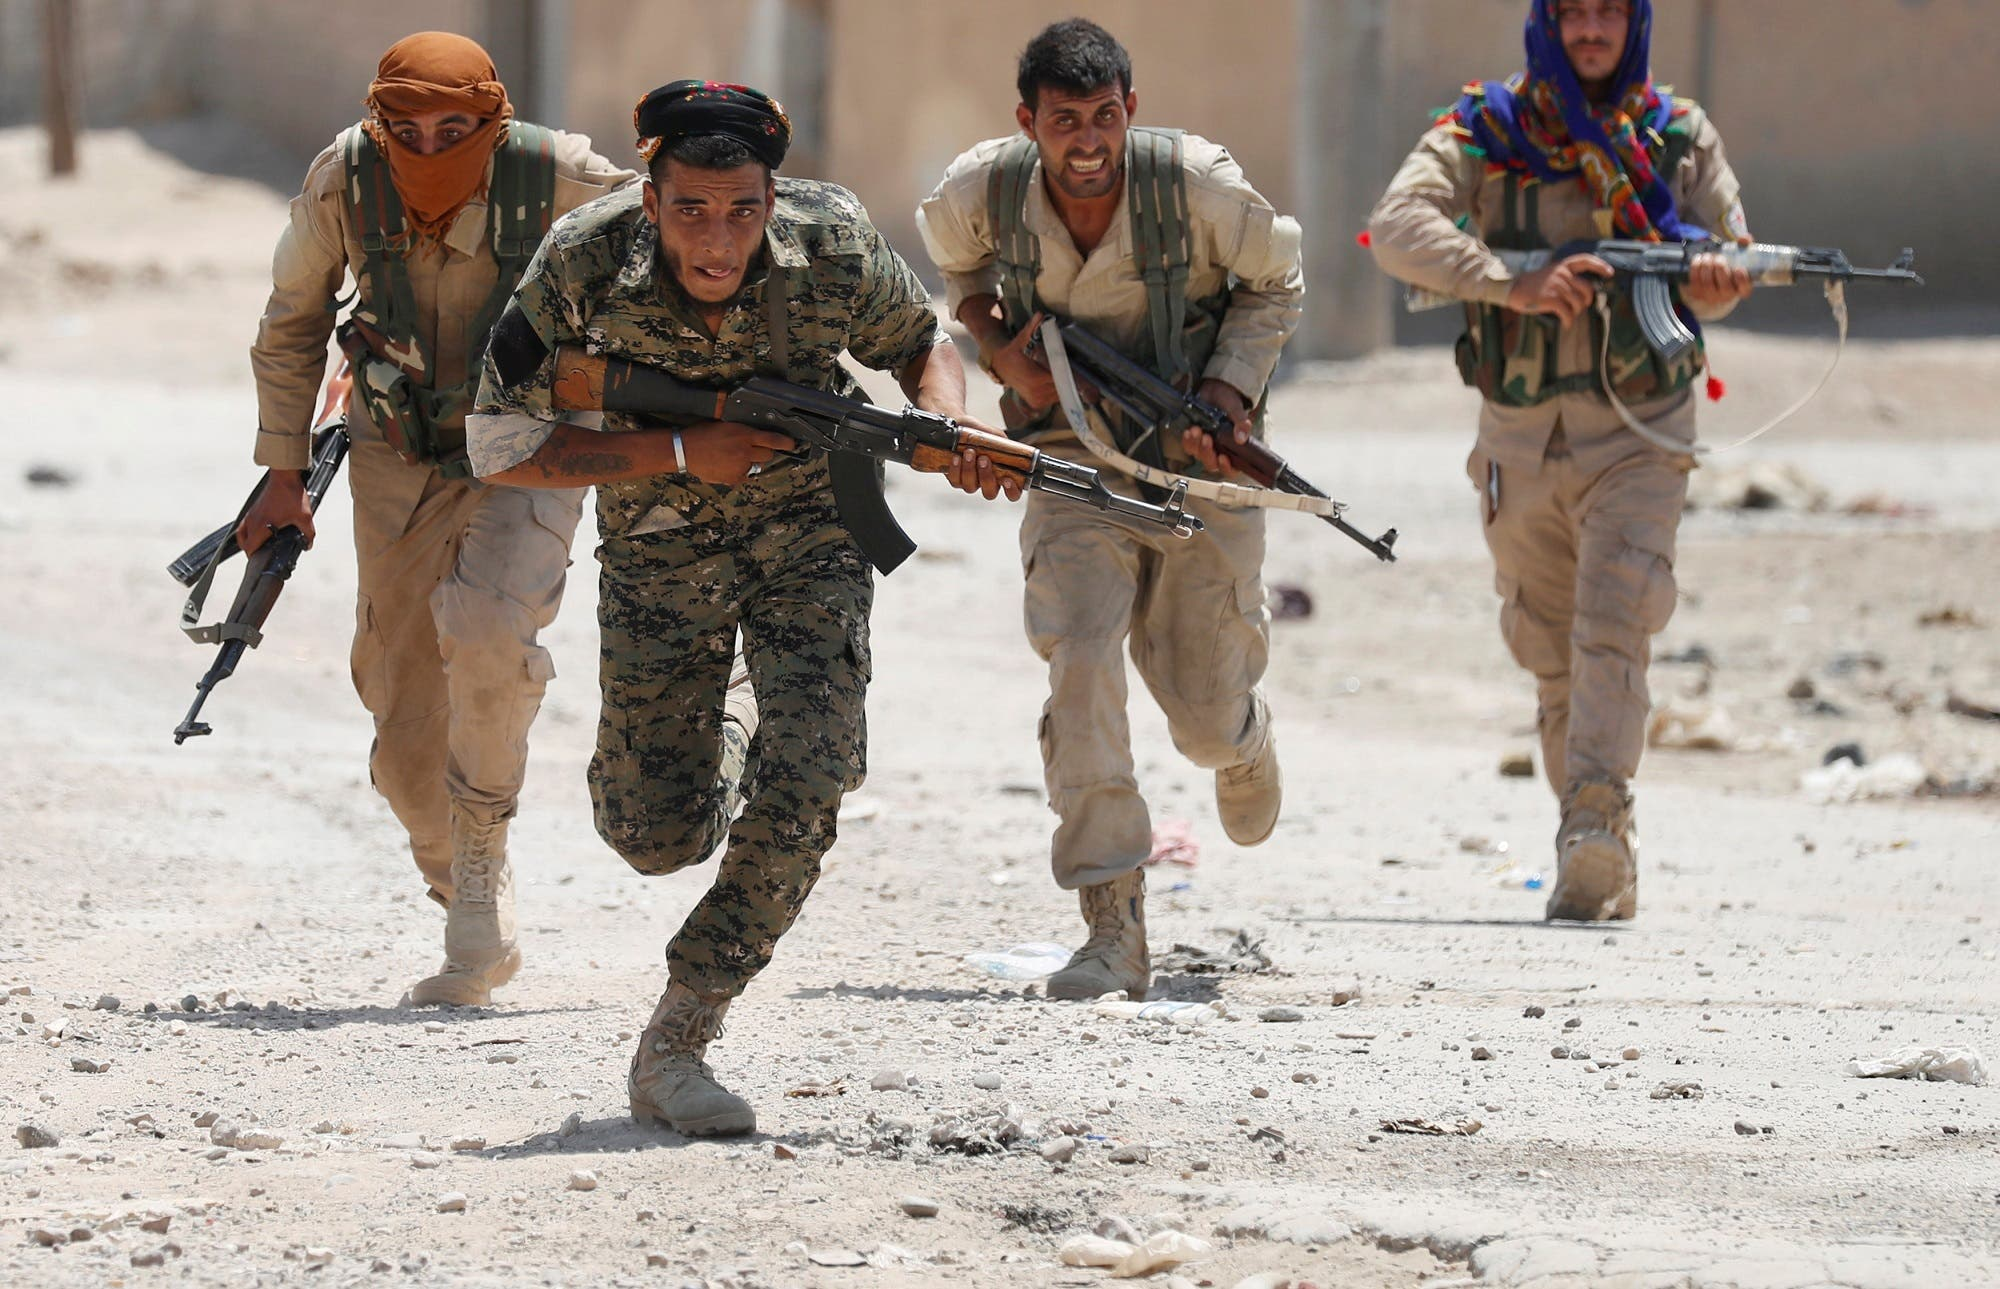 Kurdish fighters from the People's Protection Units (YPG) run across a street in Raqqa, Syria July 3, 2017. (Reuters)